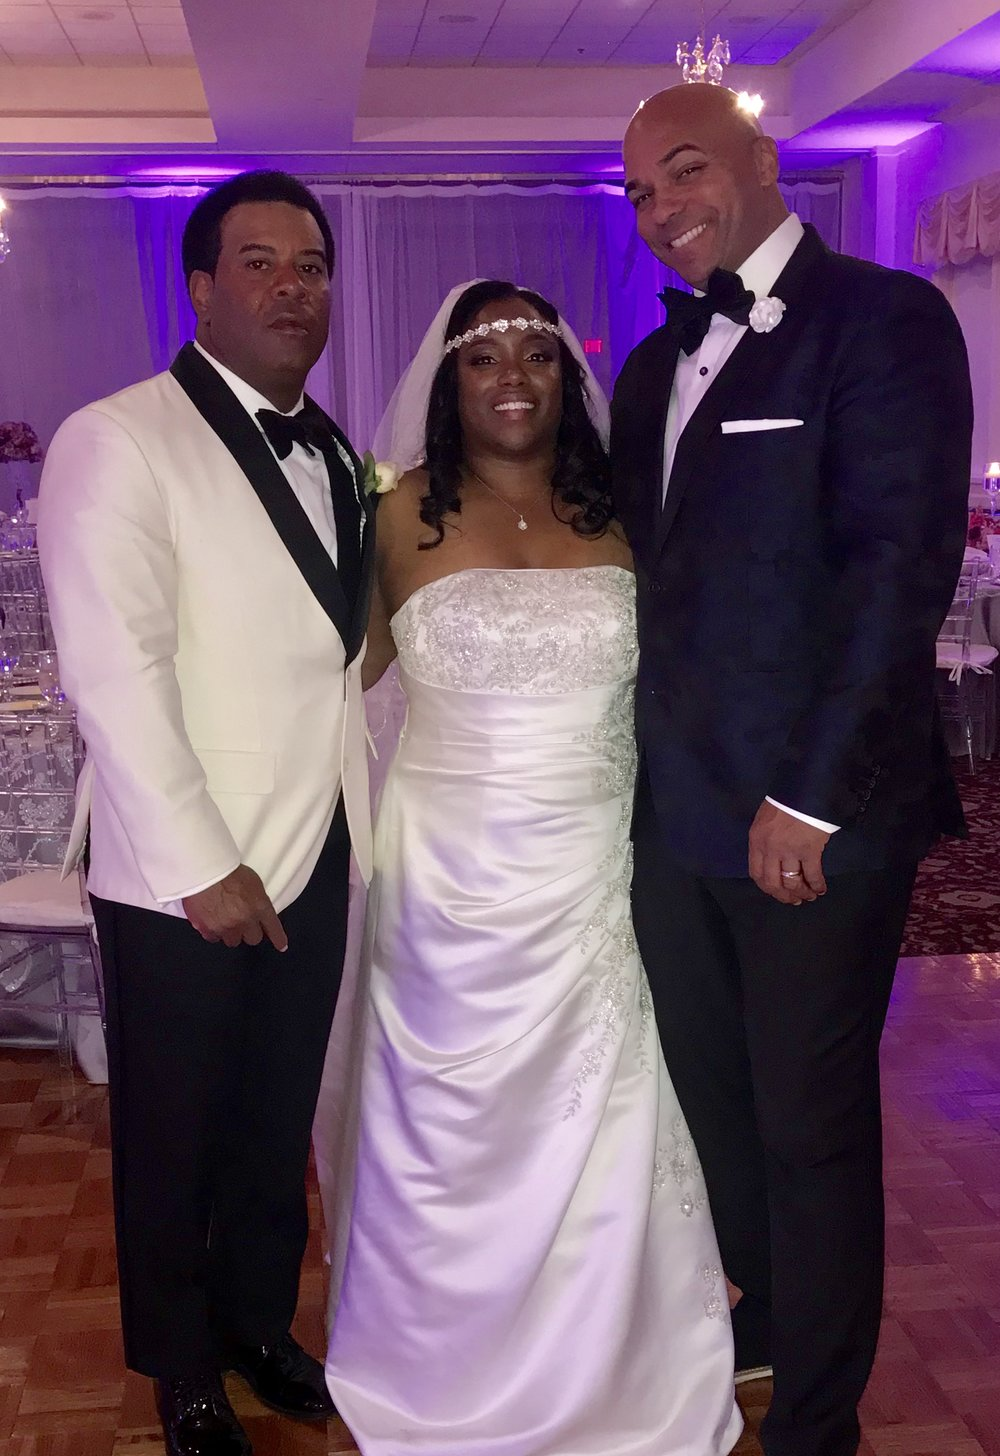 Sunday Night 11-11-18 DJ Corey Young Hosted and provided his Disc Jockey and Master of Ceremony services at Kirkbrae Country Club for this beautiful Wedding. Uplighting & Monogram also provided by DJ Corey Young